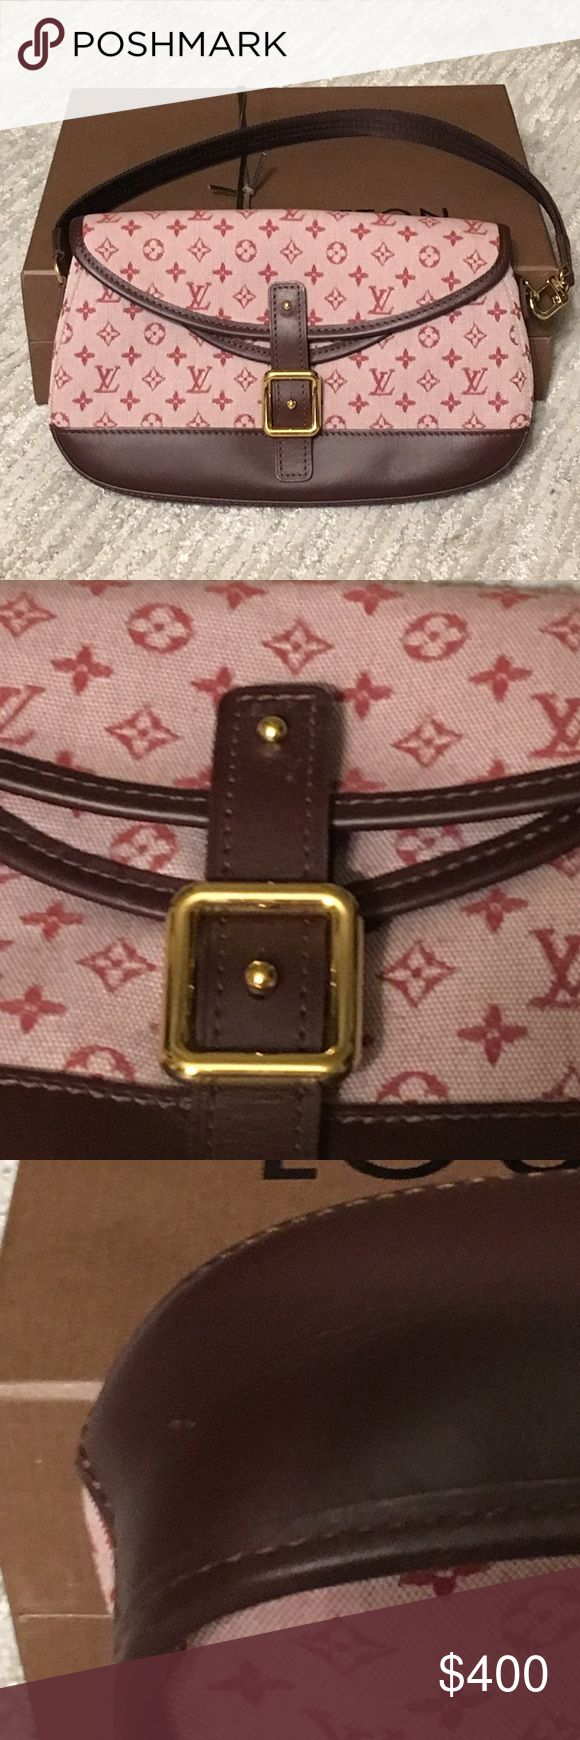 Louis Vuitton monogram canvas Majorie shoulder bag Authentic Louis Vuitton mini monogram Majorie shoulder bag in cherry. In excellent condition. Two scratches as posted in pictures. Comes with original dust bag and box. Louis Vuitton Bags Shoulder Bags